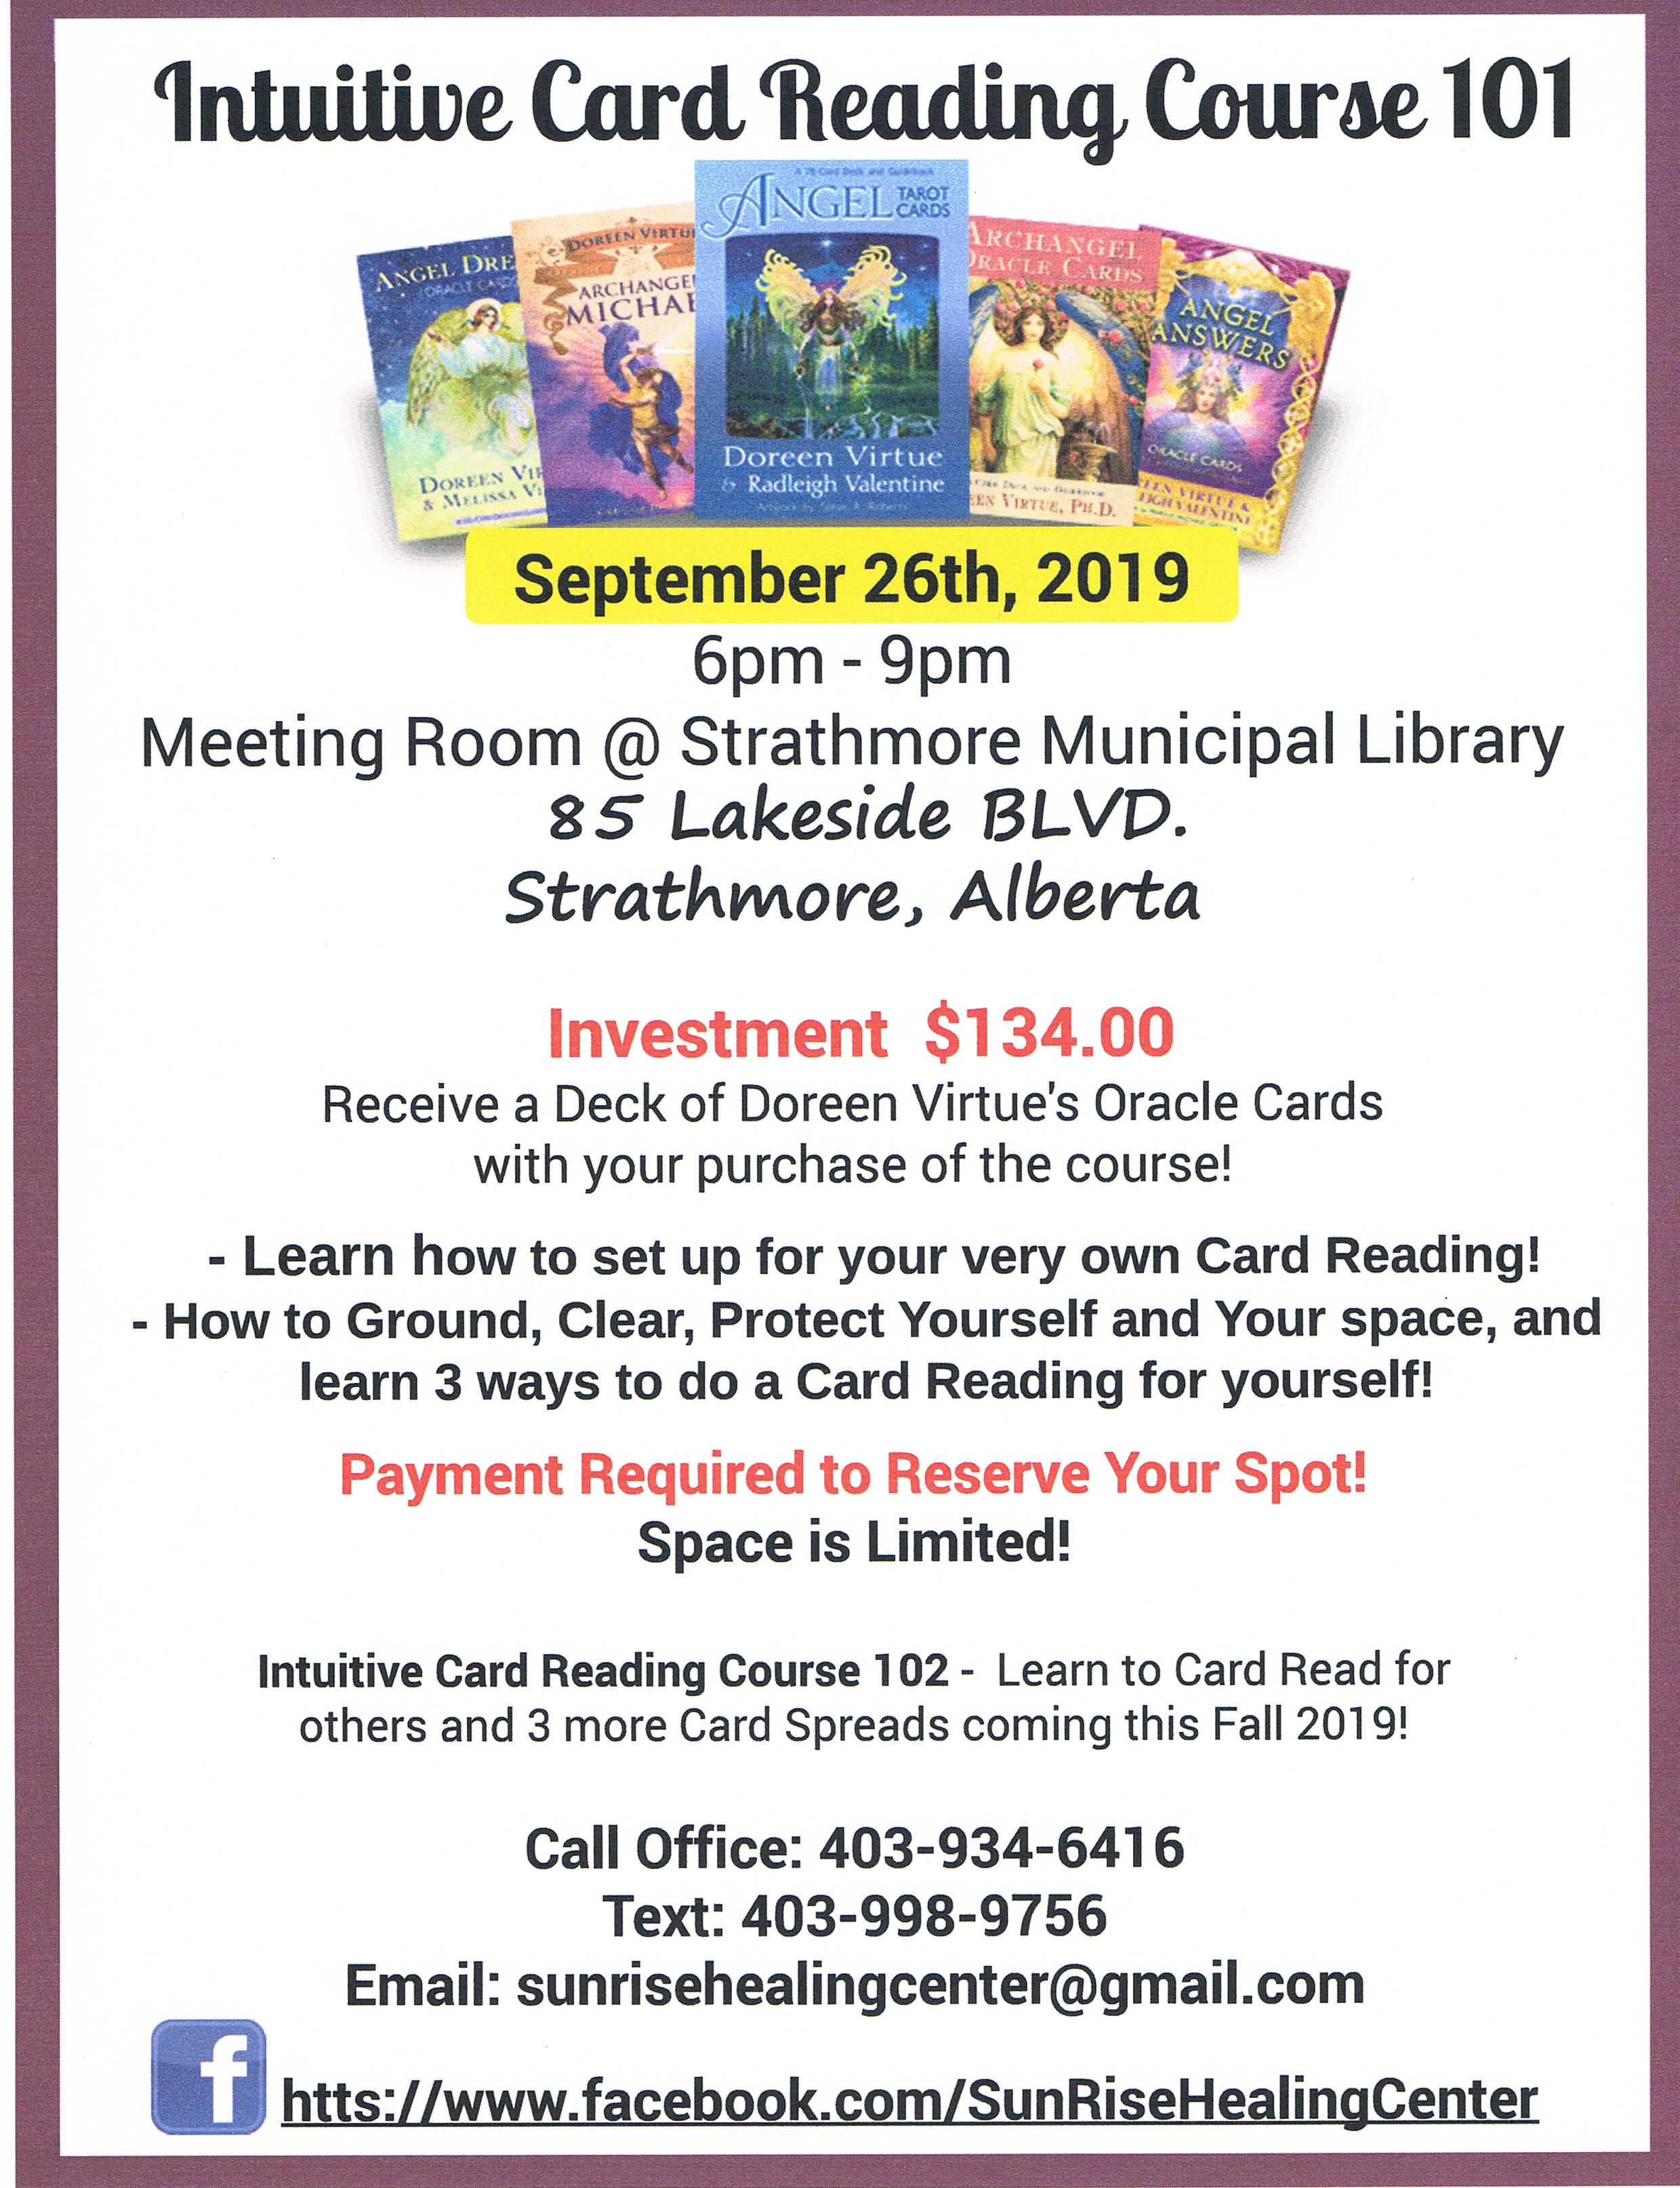 September 26, 2019 - Intuitive Reading course 101